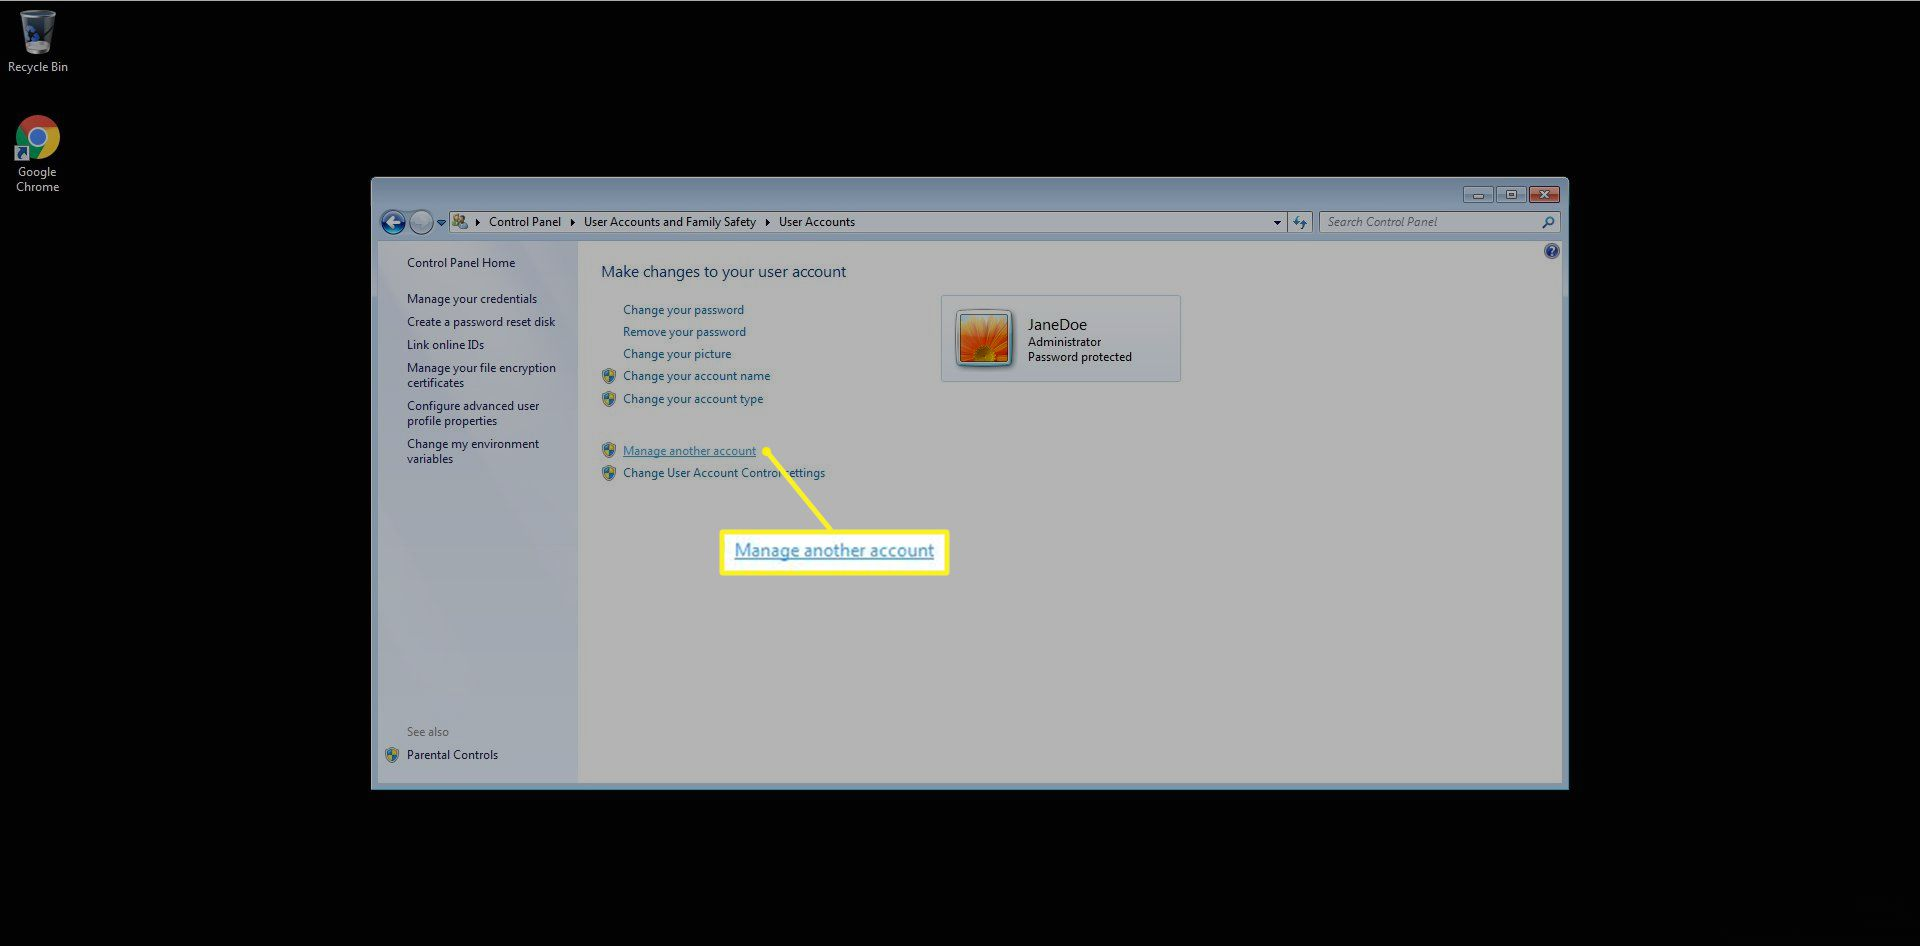 Selection to manage another account in Windows 7